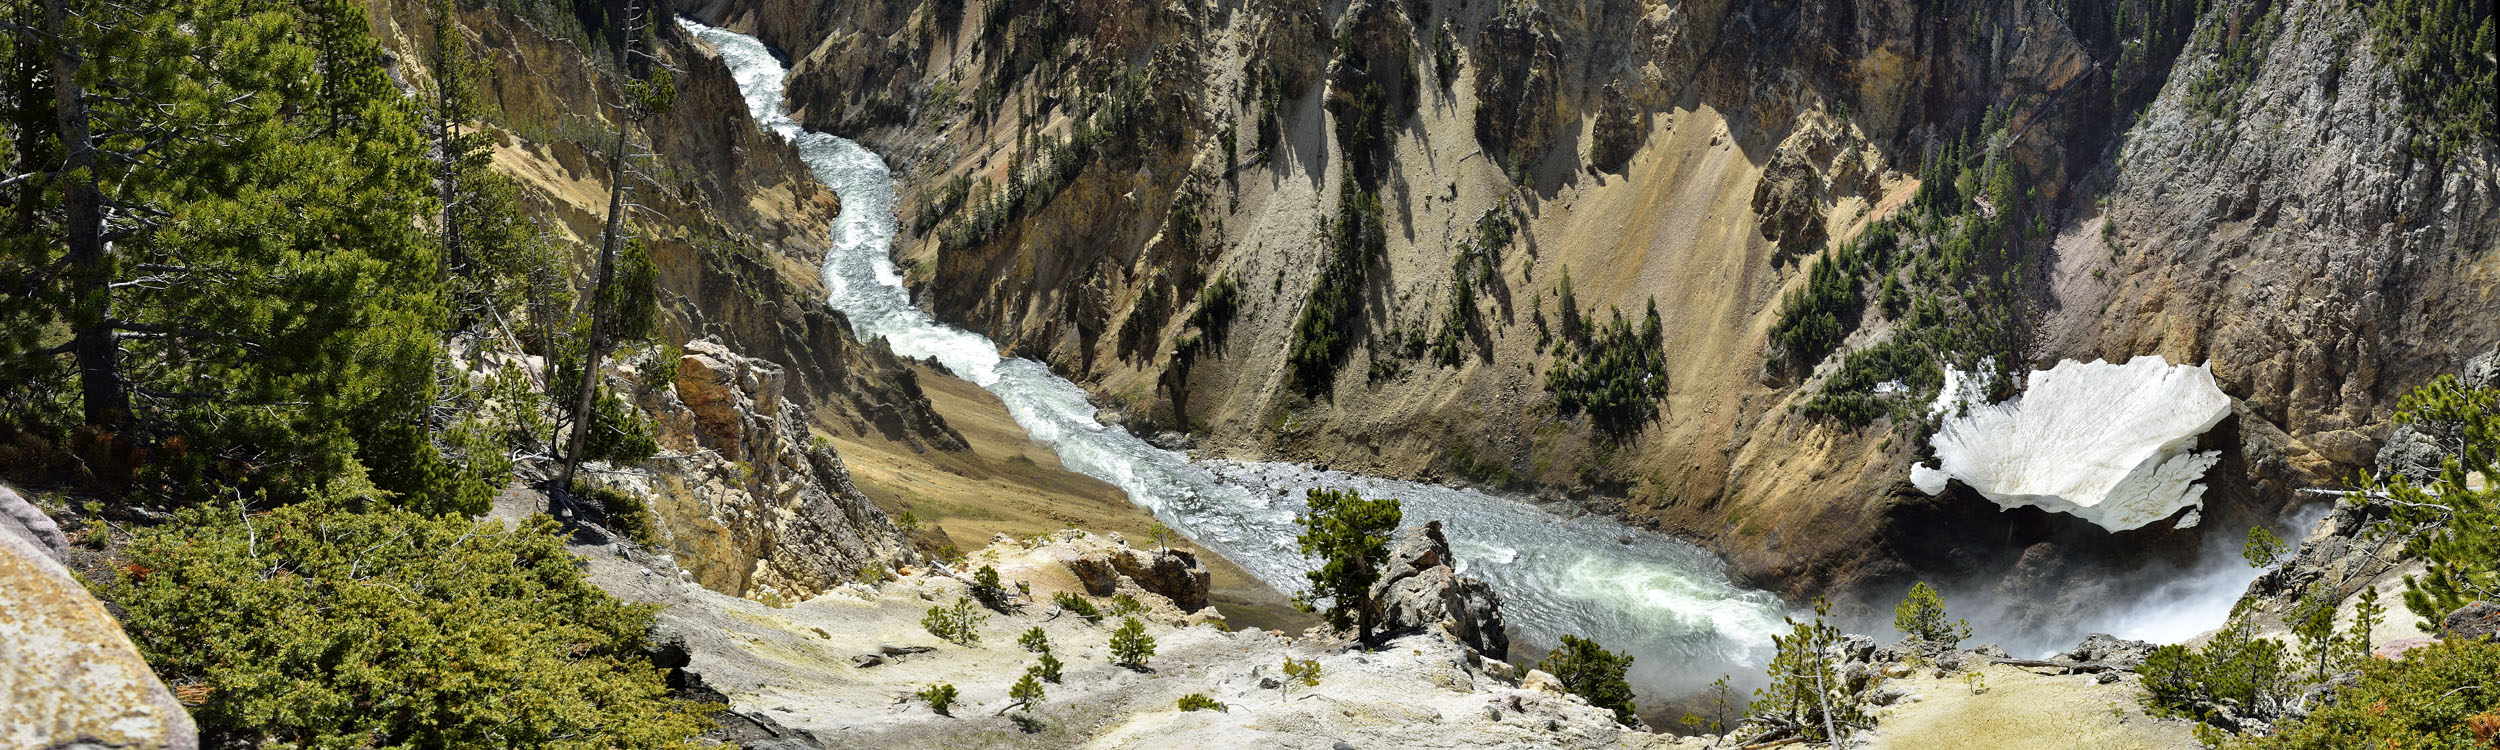 Yellowstone Canyon in Spring